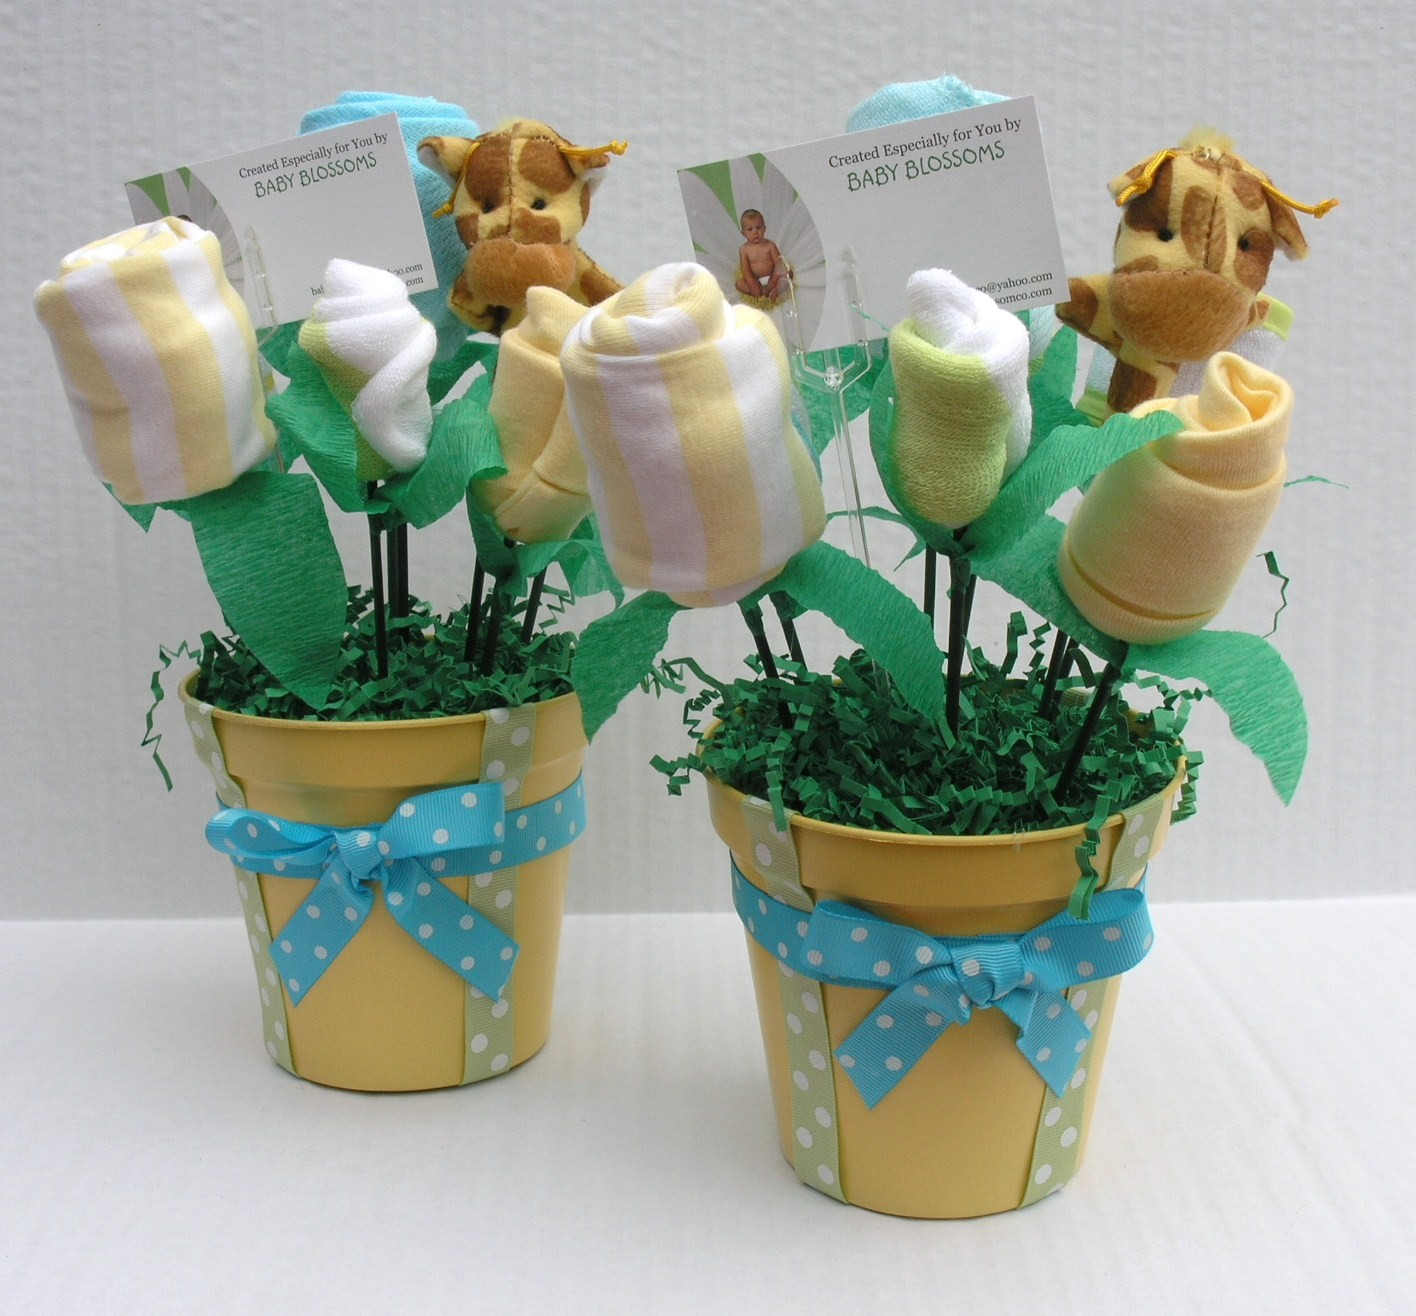 CENTRO DE MESA BABY SHOWER - YouTube